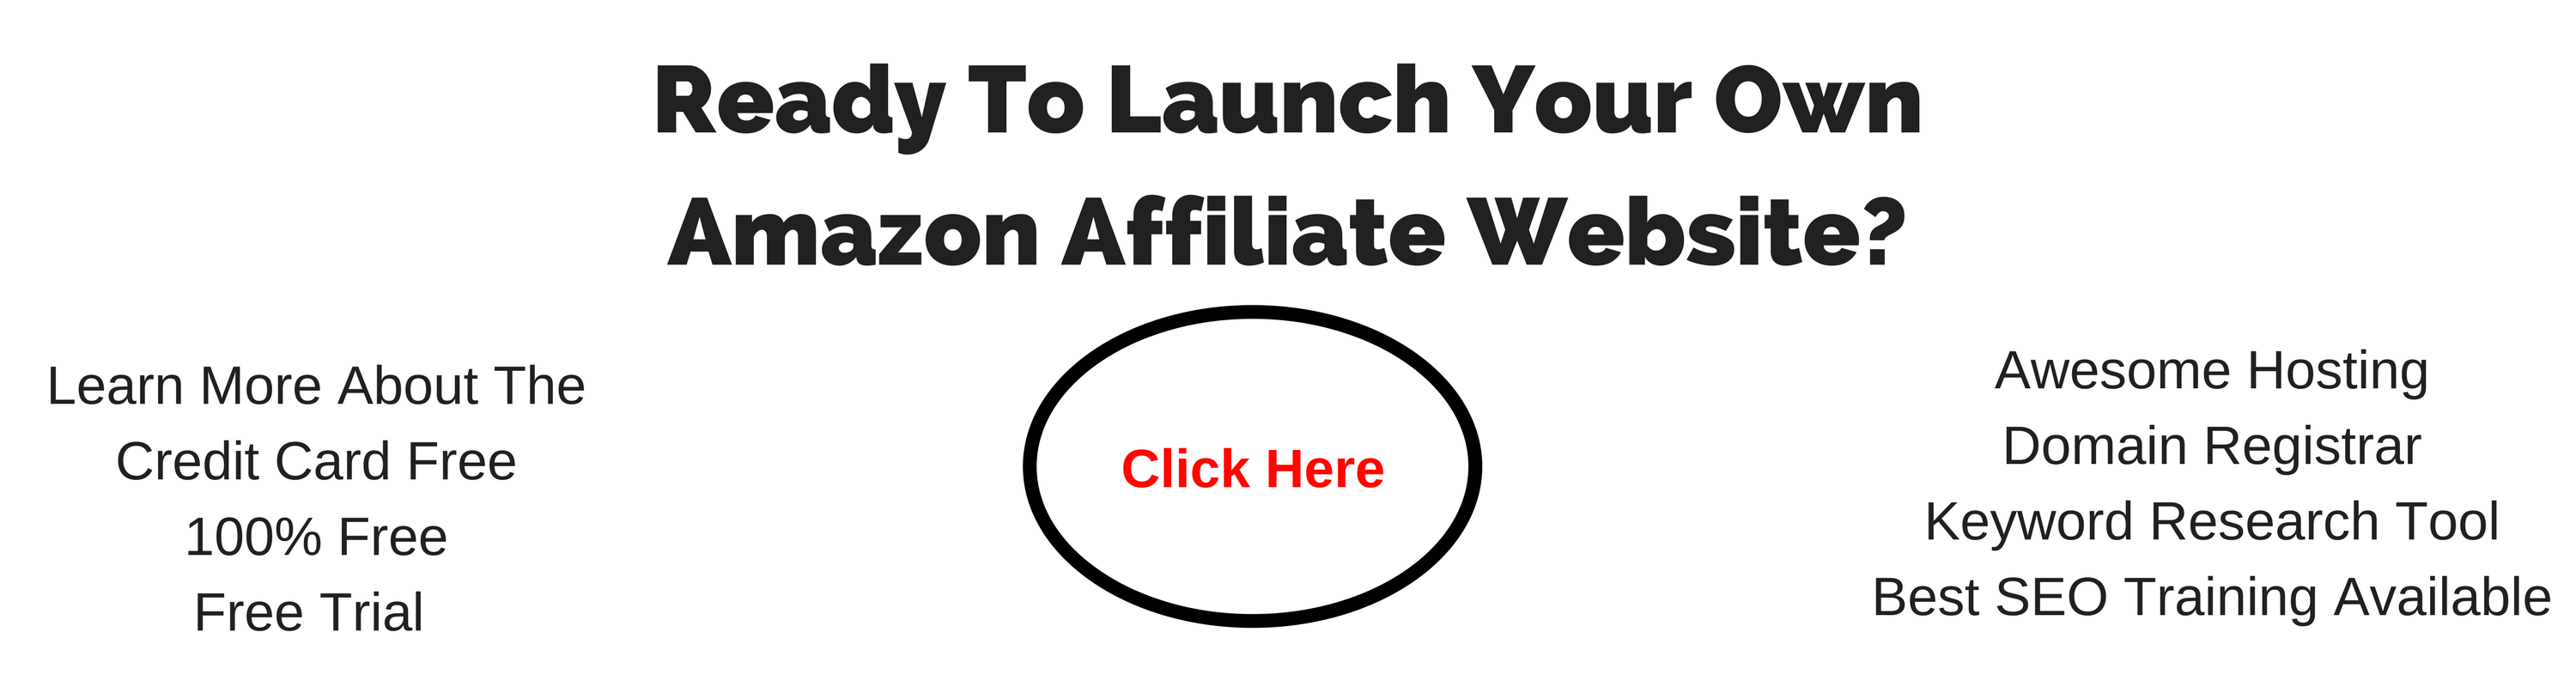 Ready To Launch Your Own Amazon Affiliate Website